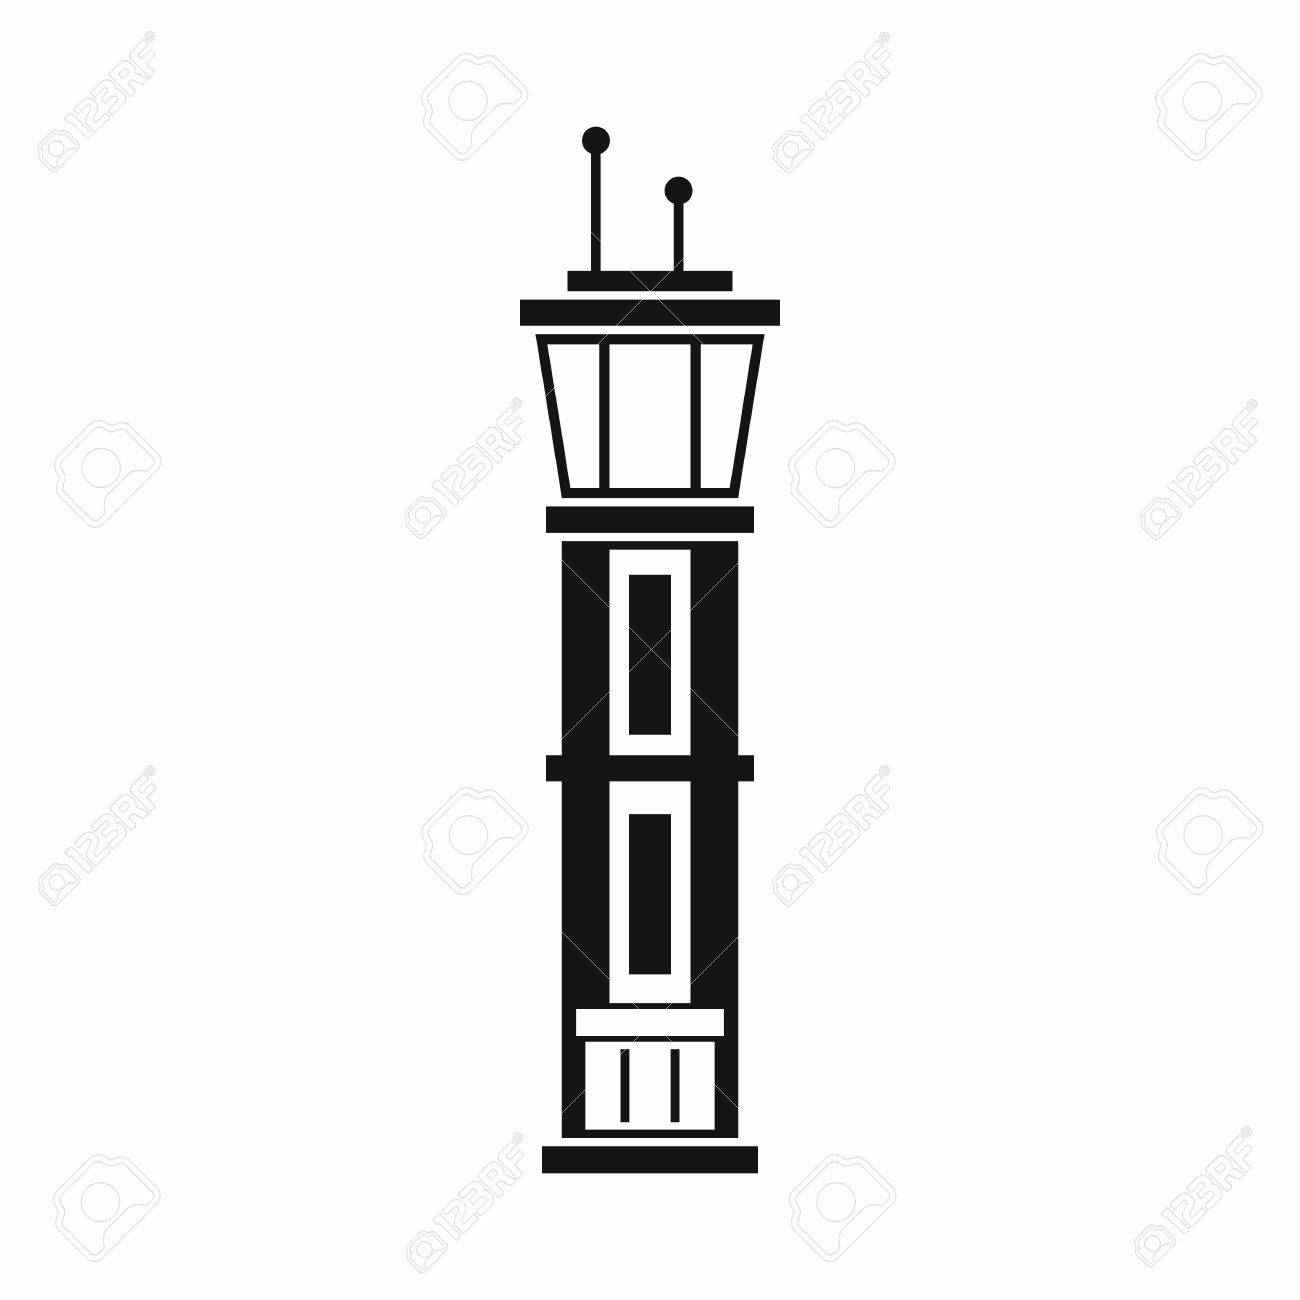 Airport control tower icon in simple style isolated on white background vector illustration - 62418955